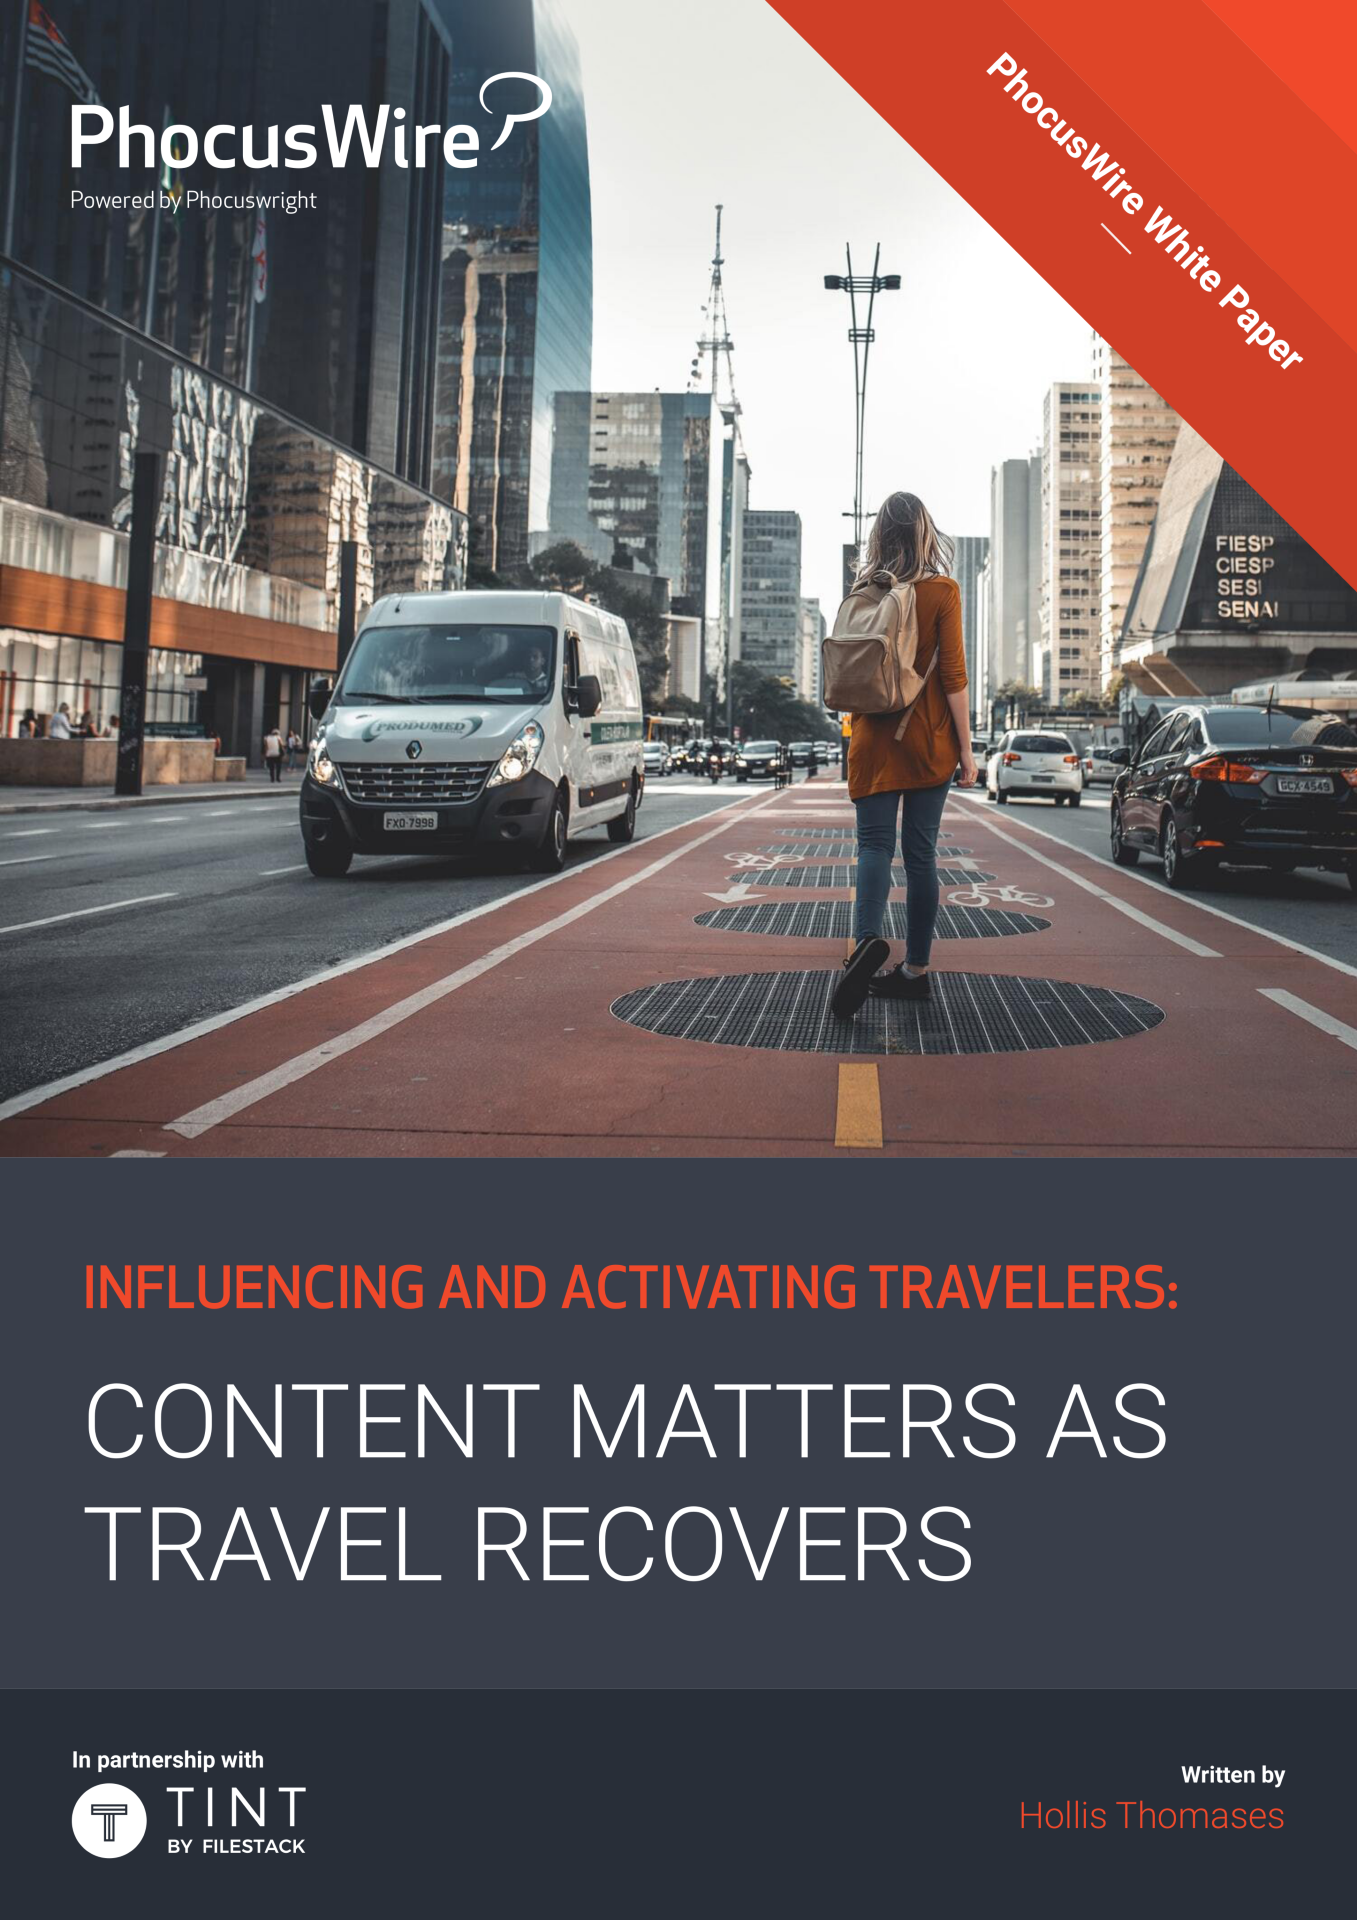 Content Matters as Travel Recovers (1)